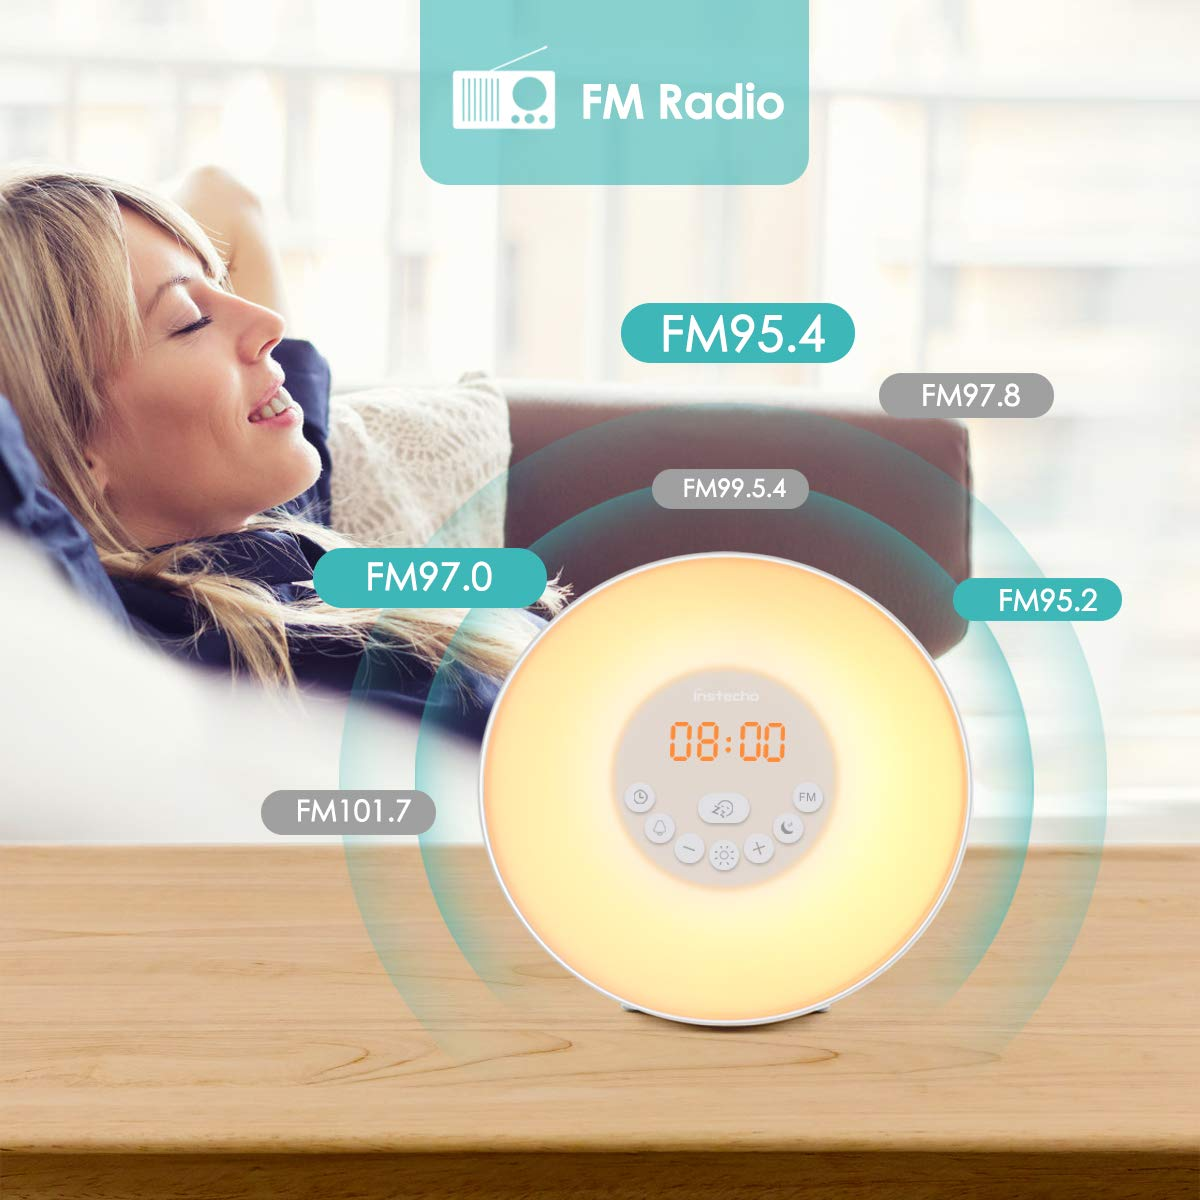 instecho Sunrise Alarm Clock, Digital Clock, Wake Up Light with 6 Nature Sounds, FM Radio and Touch Control (White) ... by instecho (Image #4)